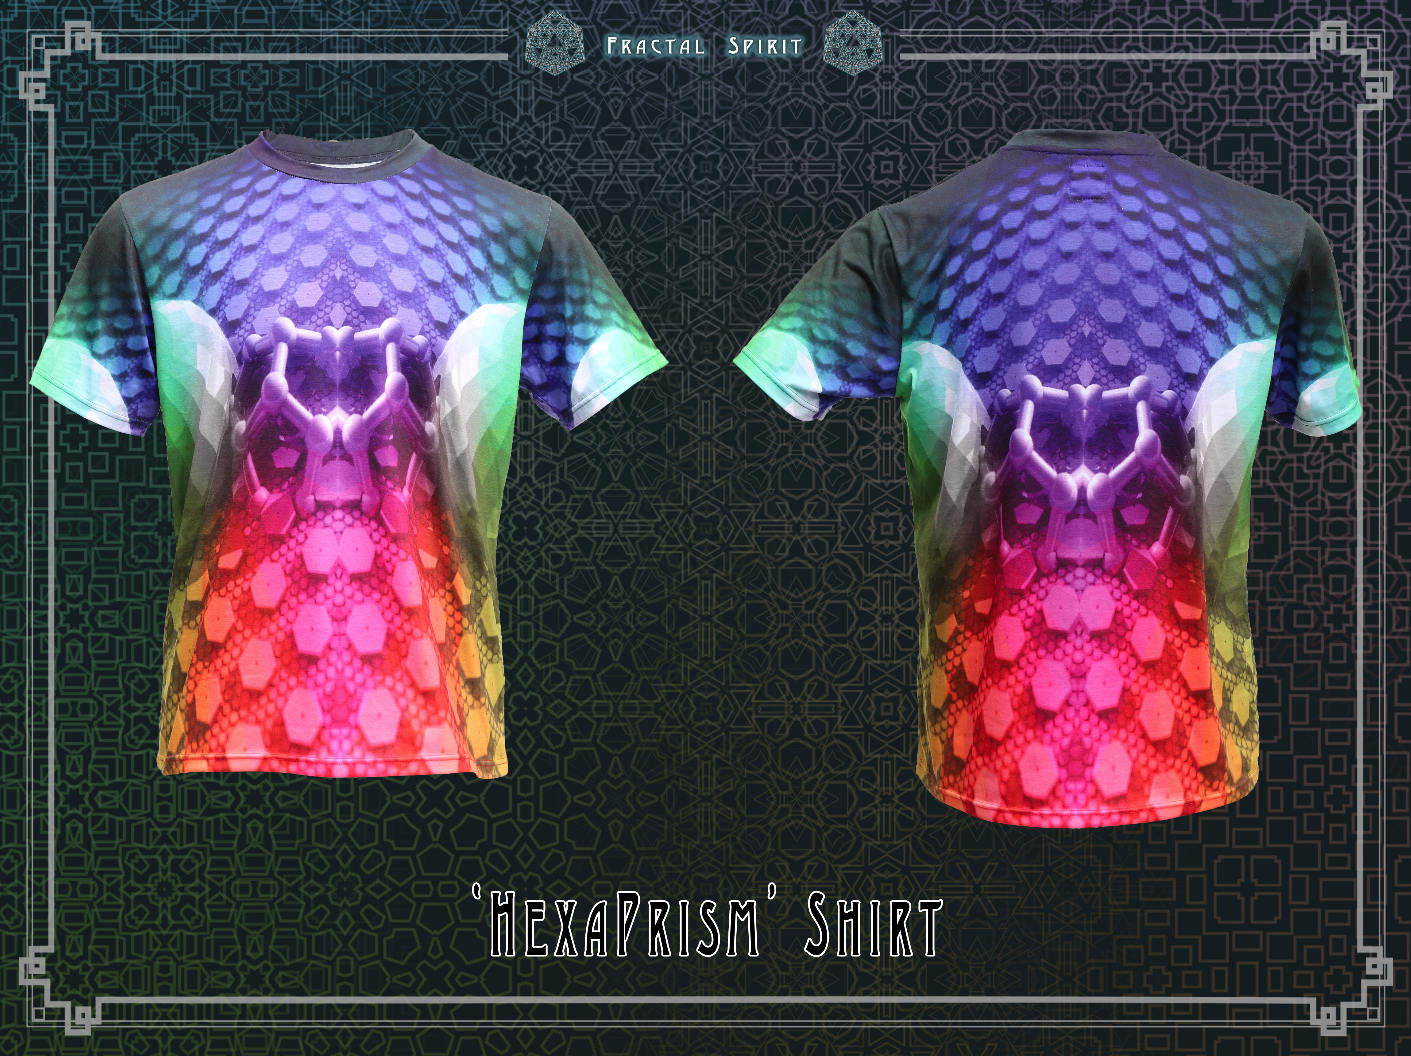 Shirt (Sublimation) - HexaPrism - Fractal Spirit